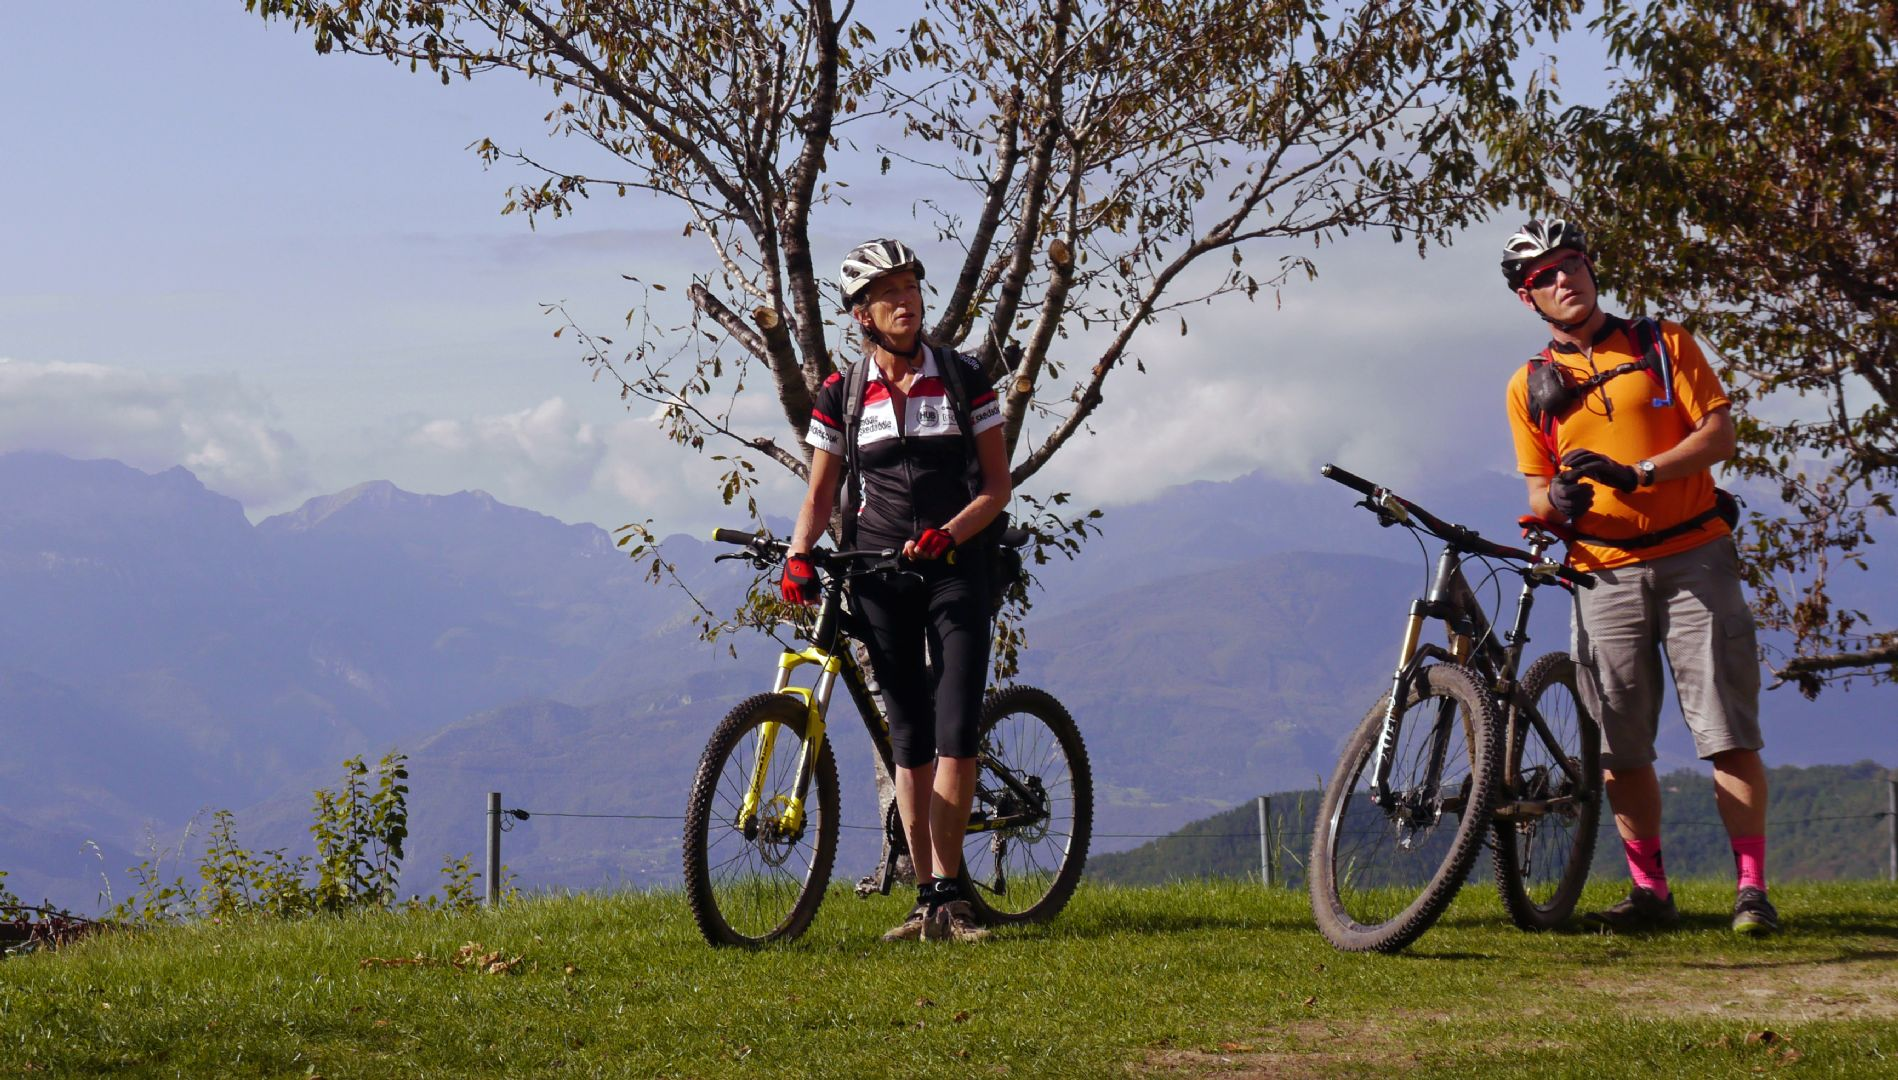 C&A pose.jpg - Italy - Tuscany - Secret Apennine Trails - Italia Mountain Biking